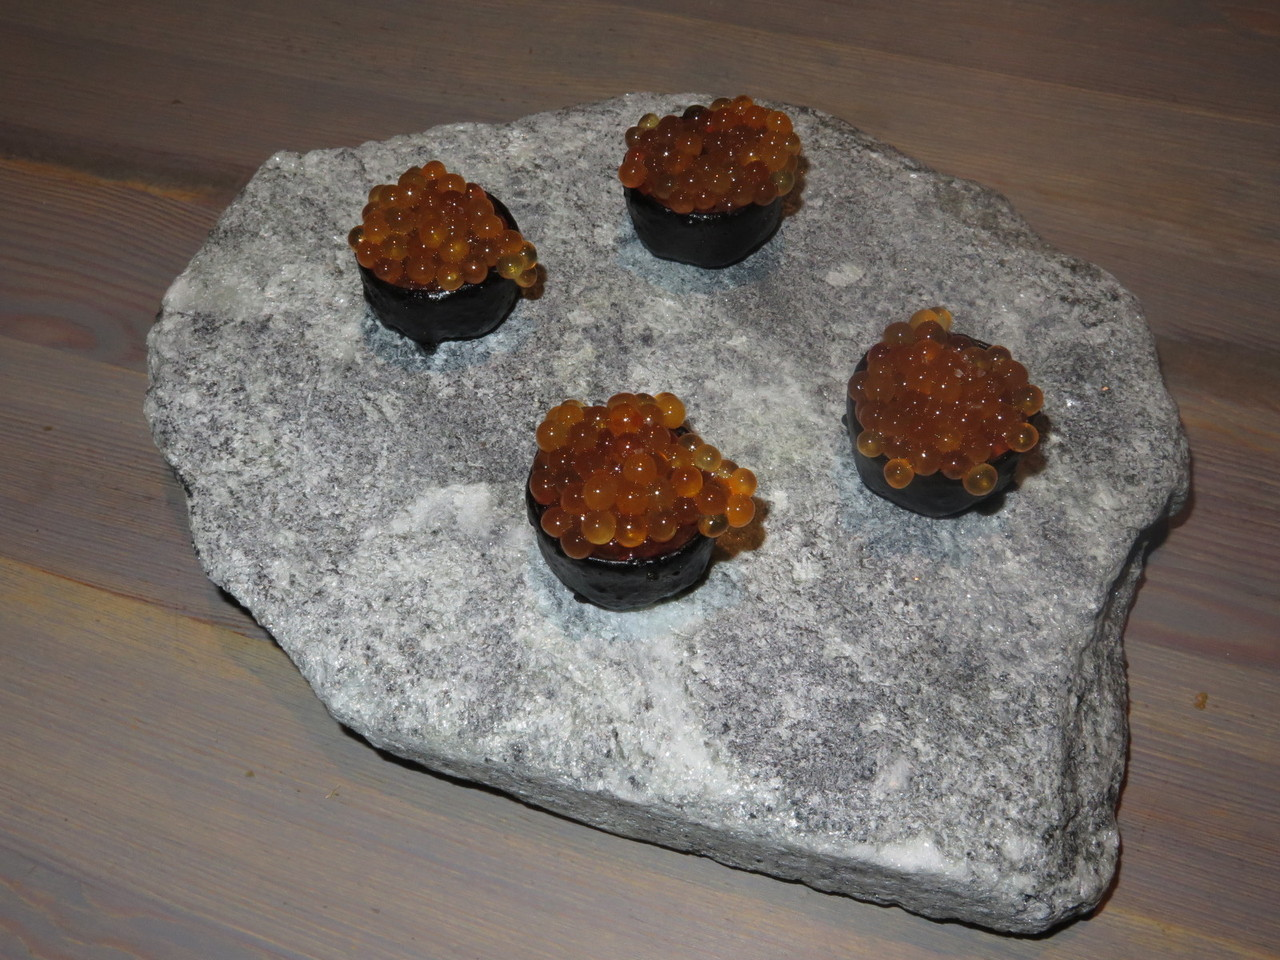 Wild trout roe served in a crust of dried pig's blood